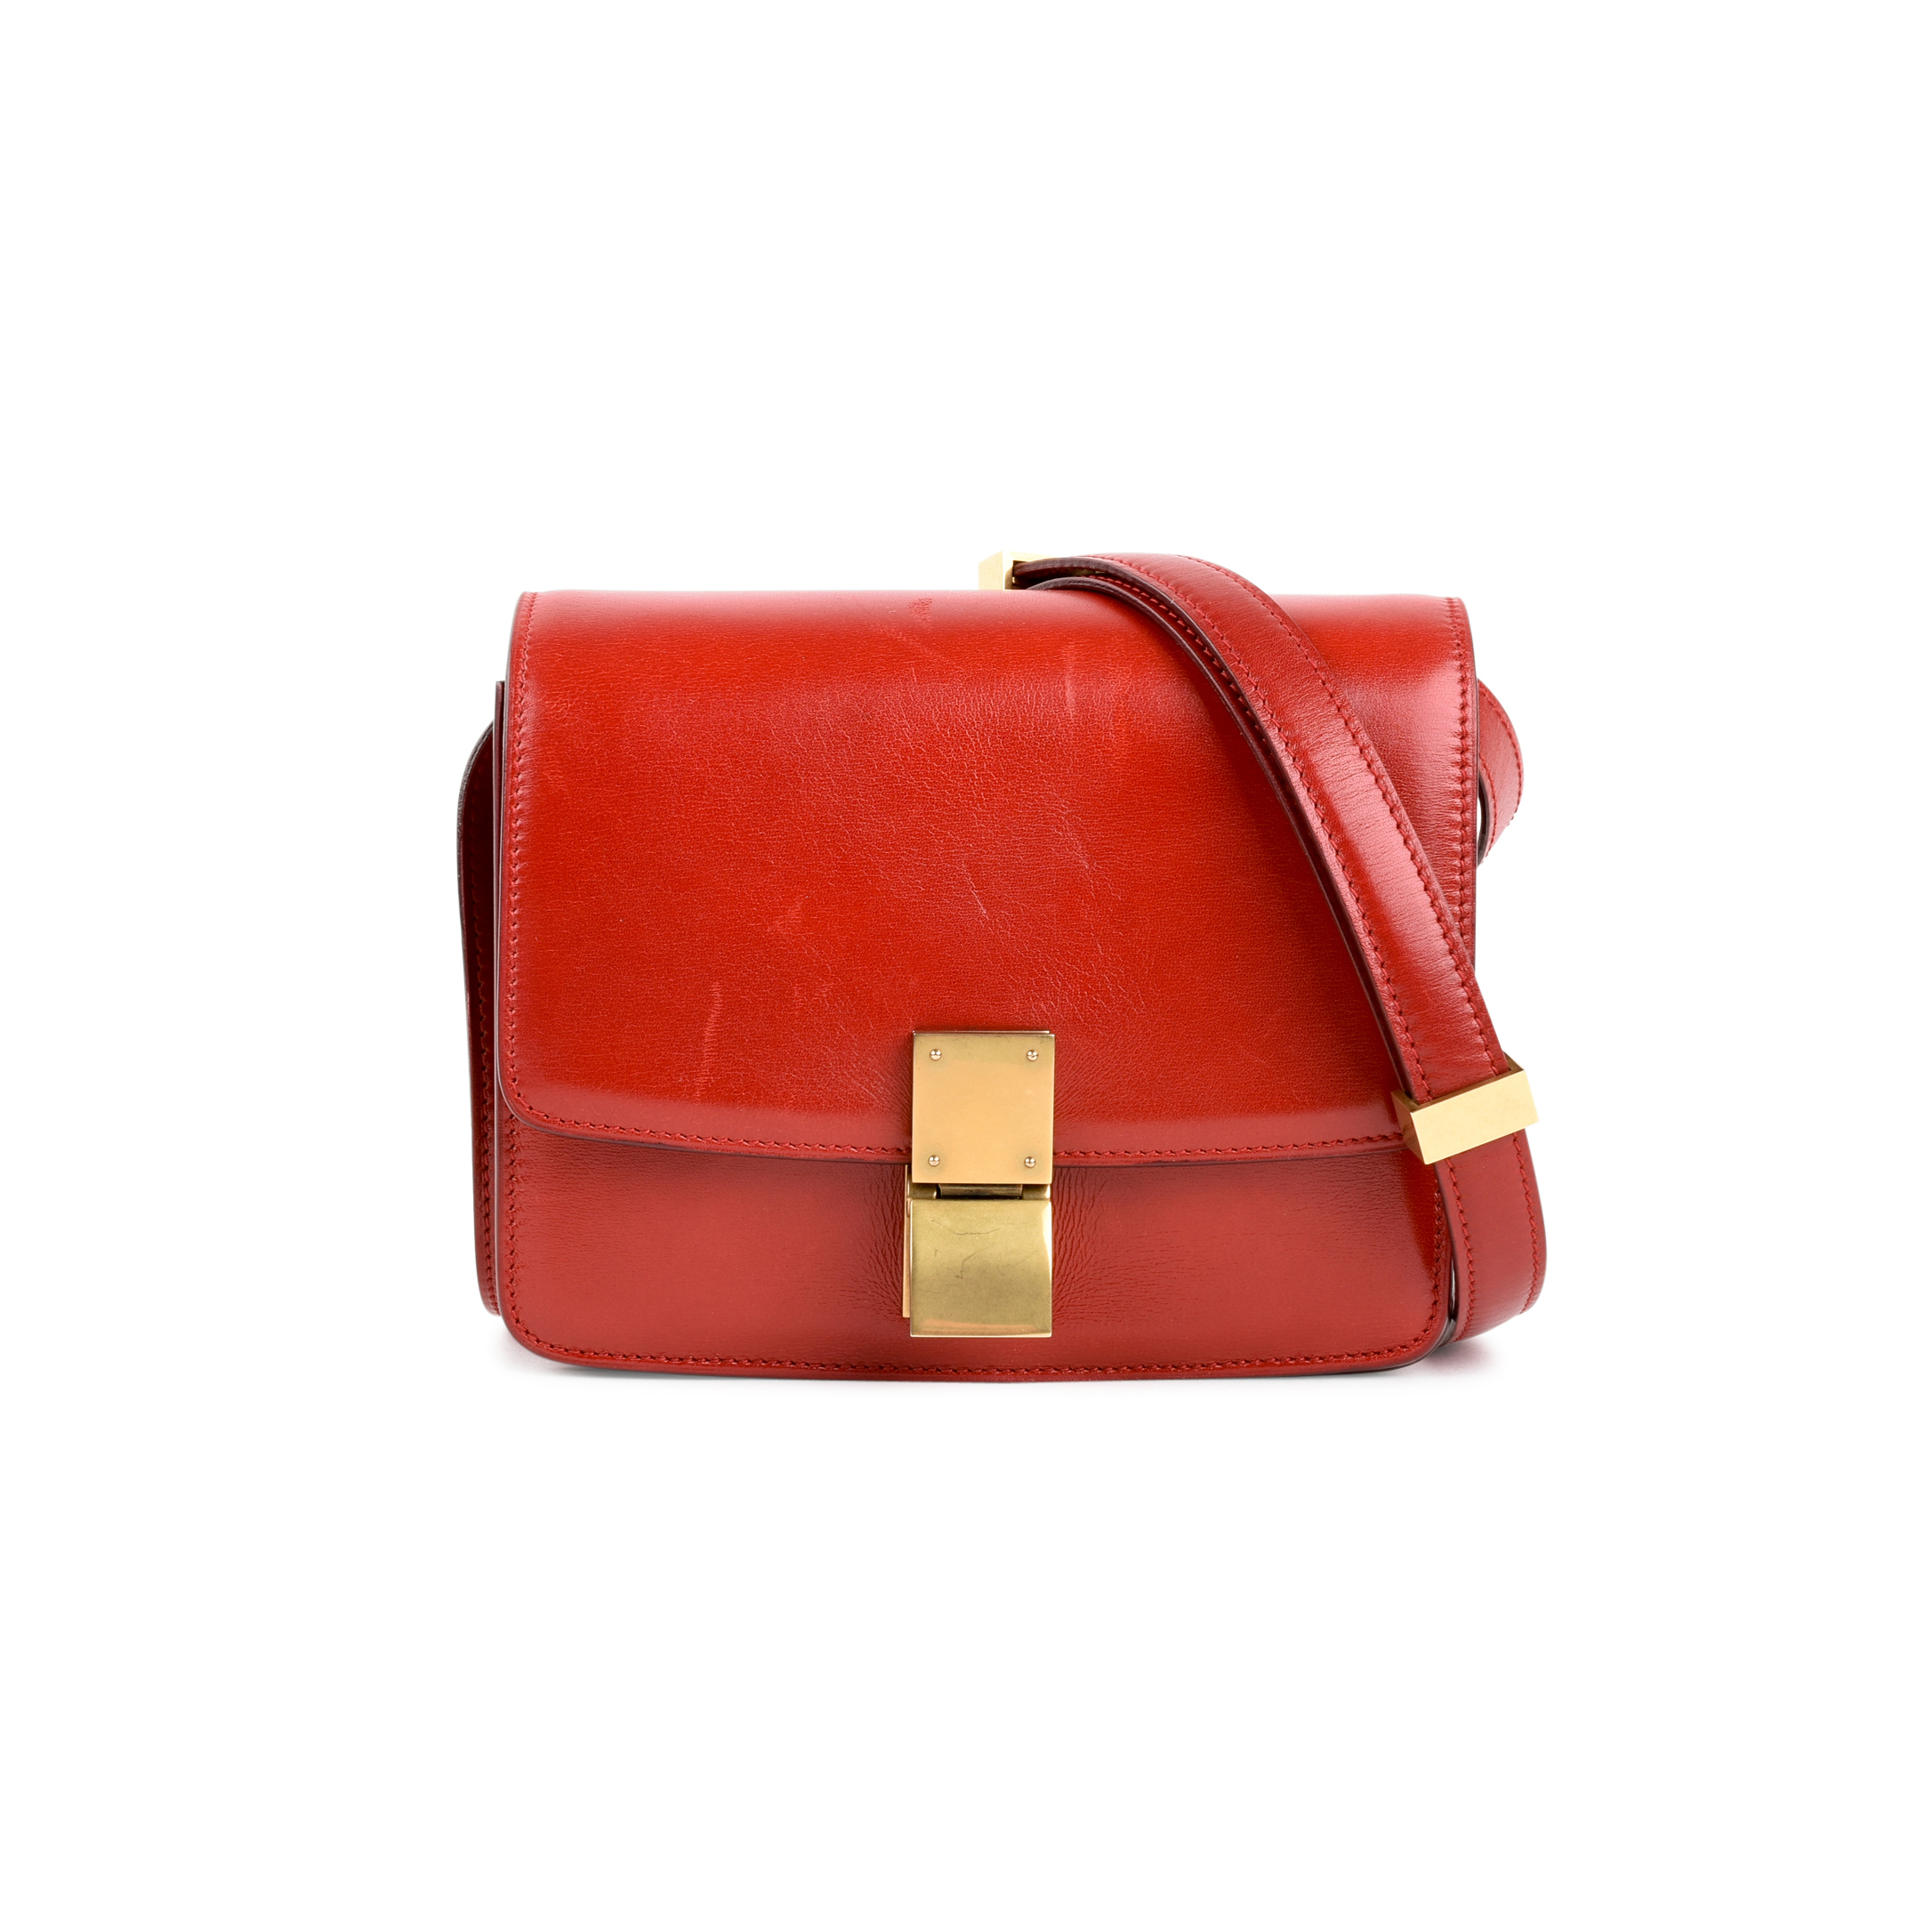 15862a5135 Authentic Second Hand Céline Mini Box Bag (PSS-240-00216)